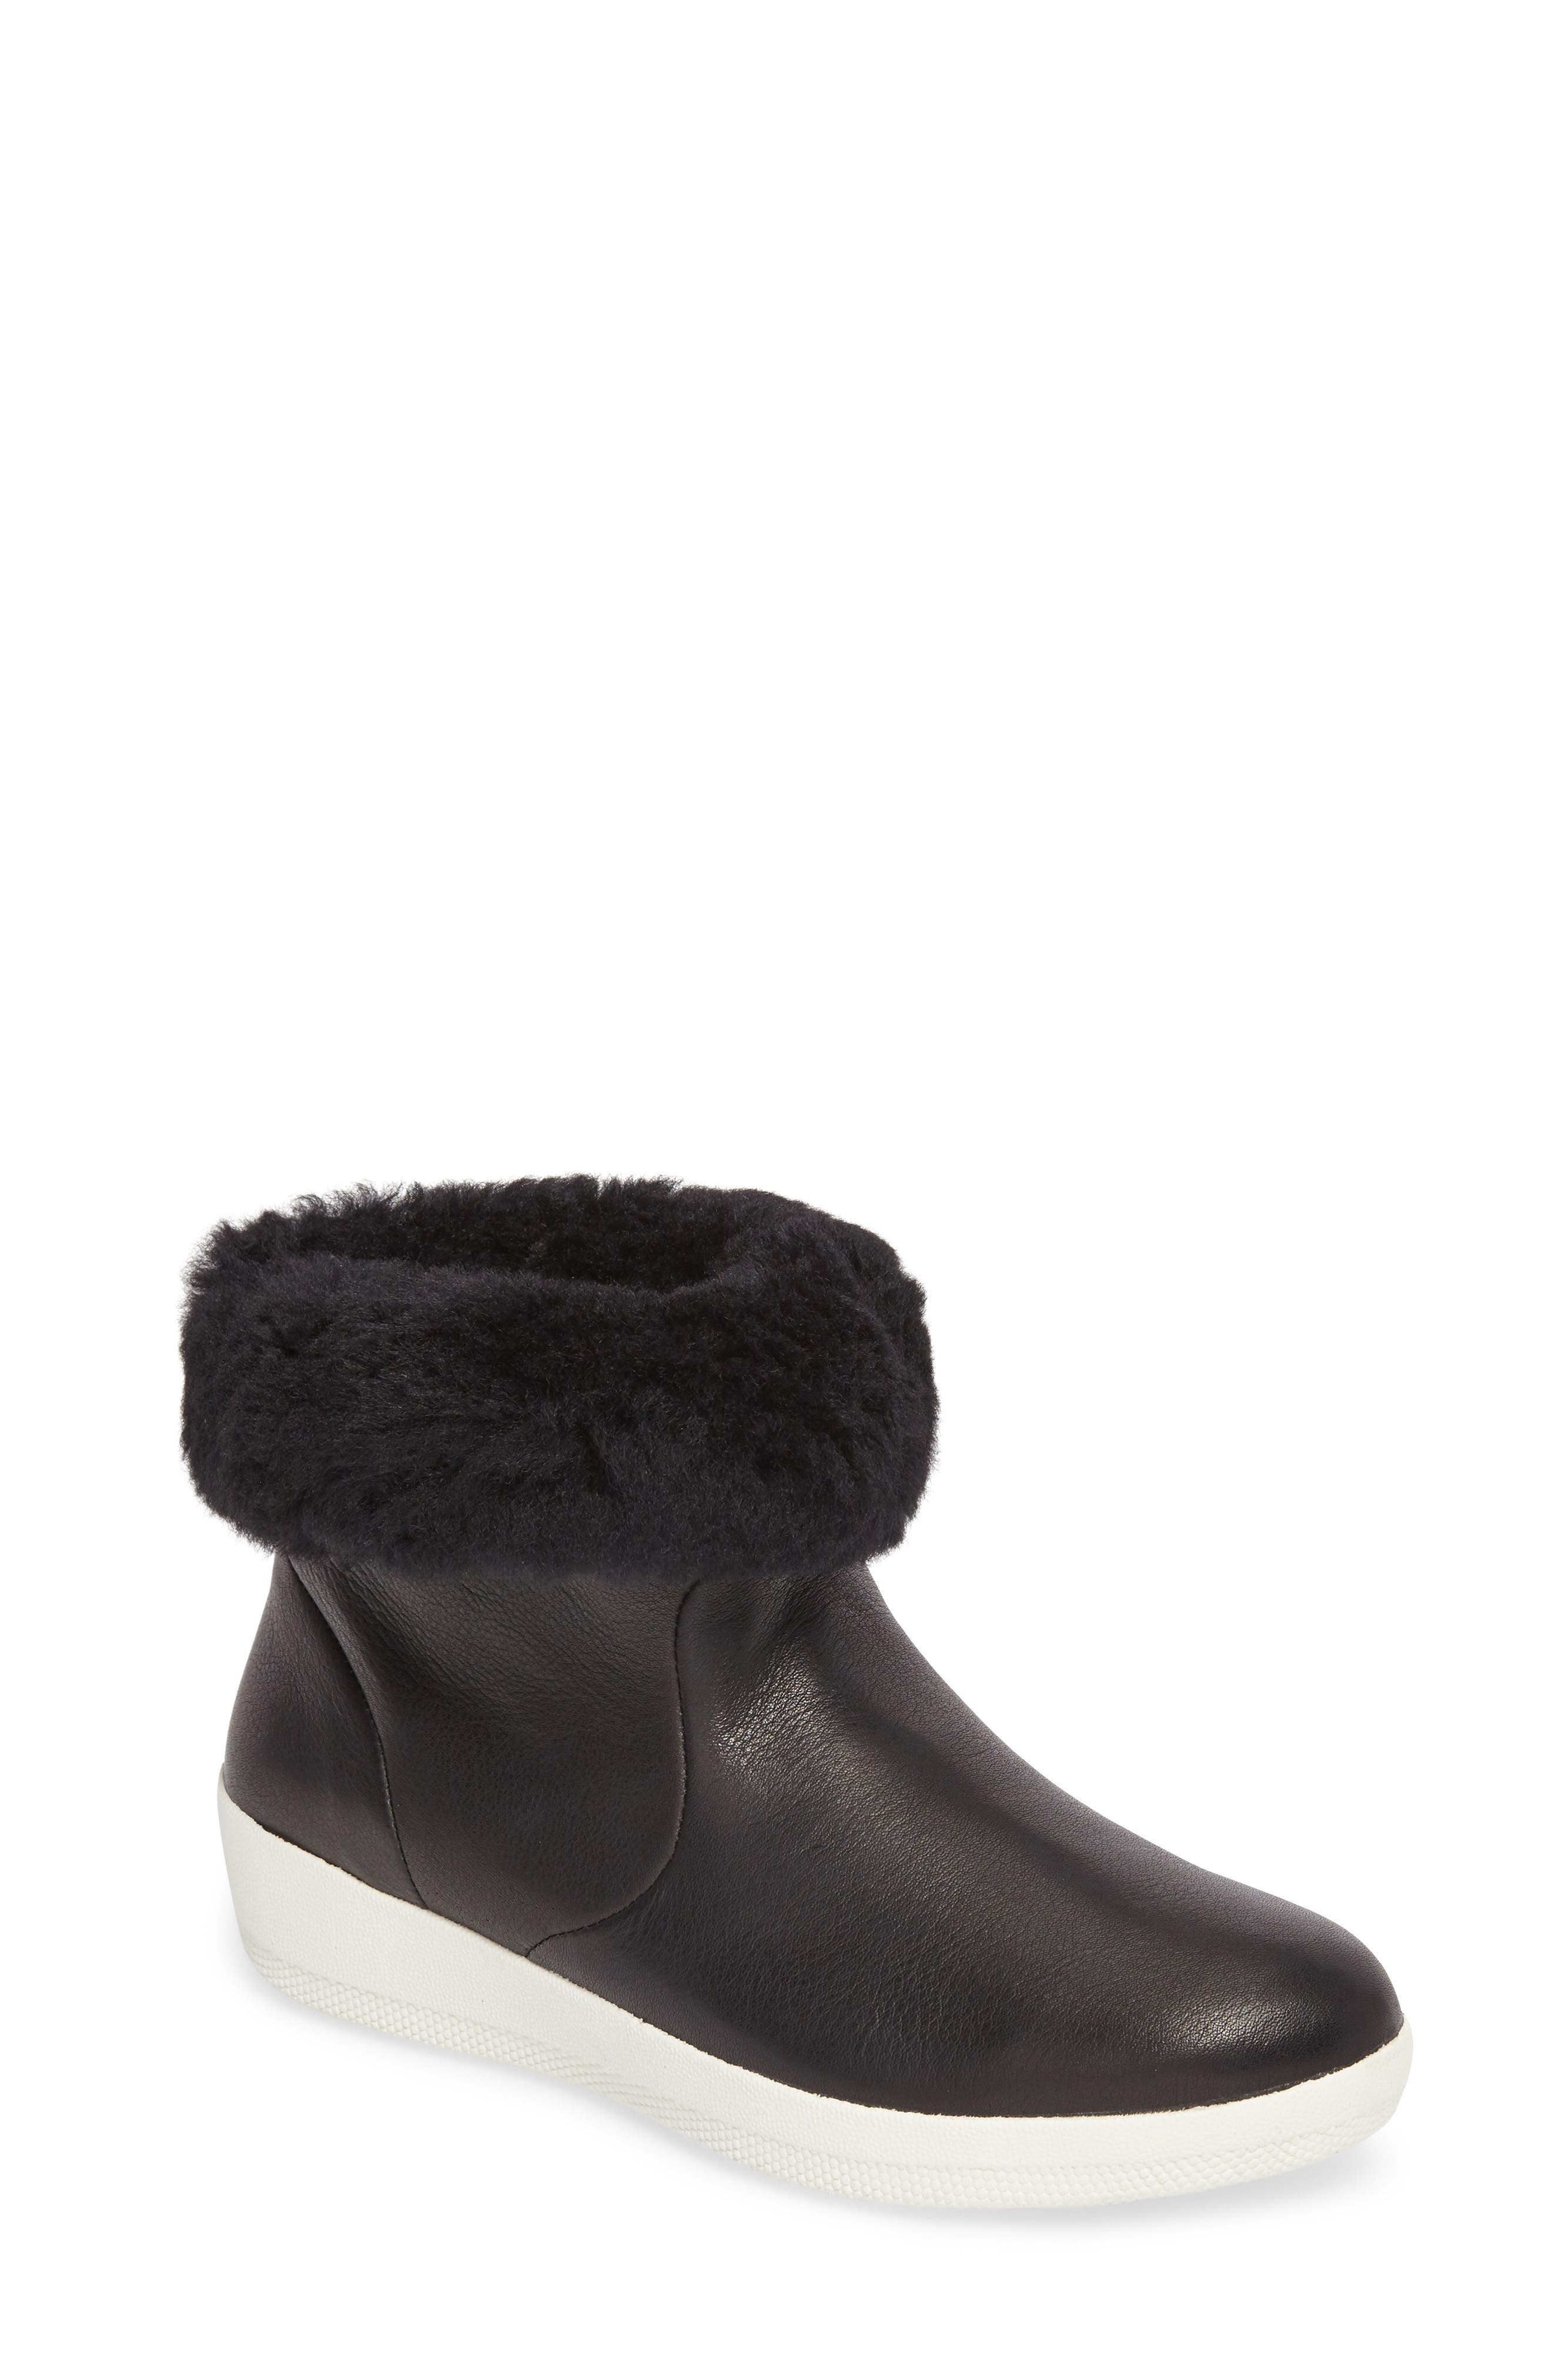 Skatebootie<sup>™</sup> with Genuine Shearling Cuff,                             Main thumbnail 1, color,